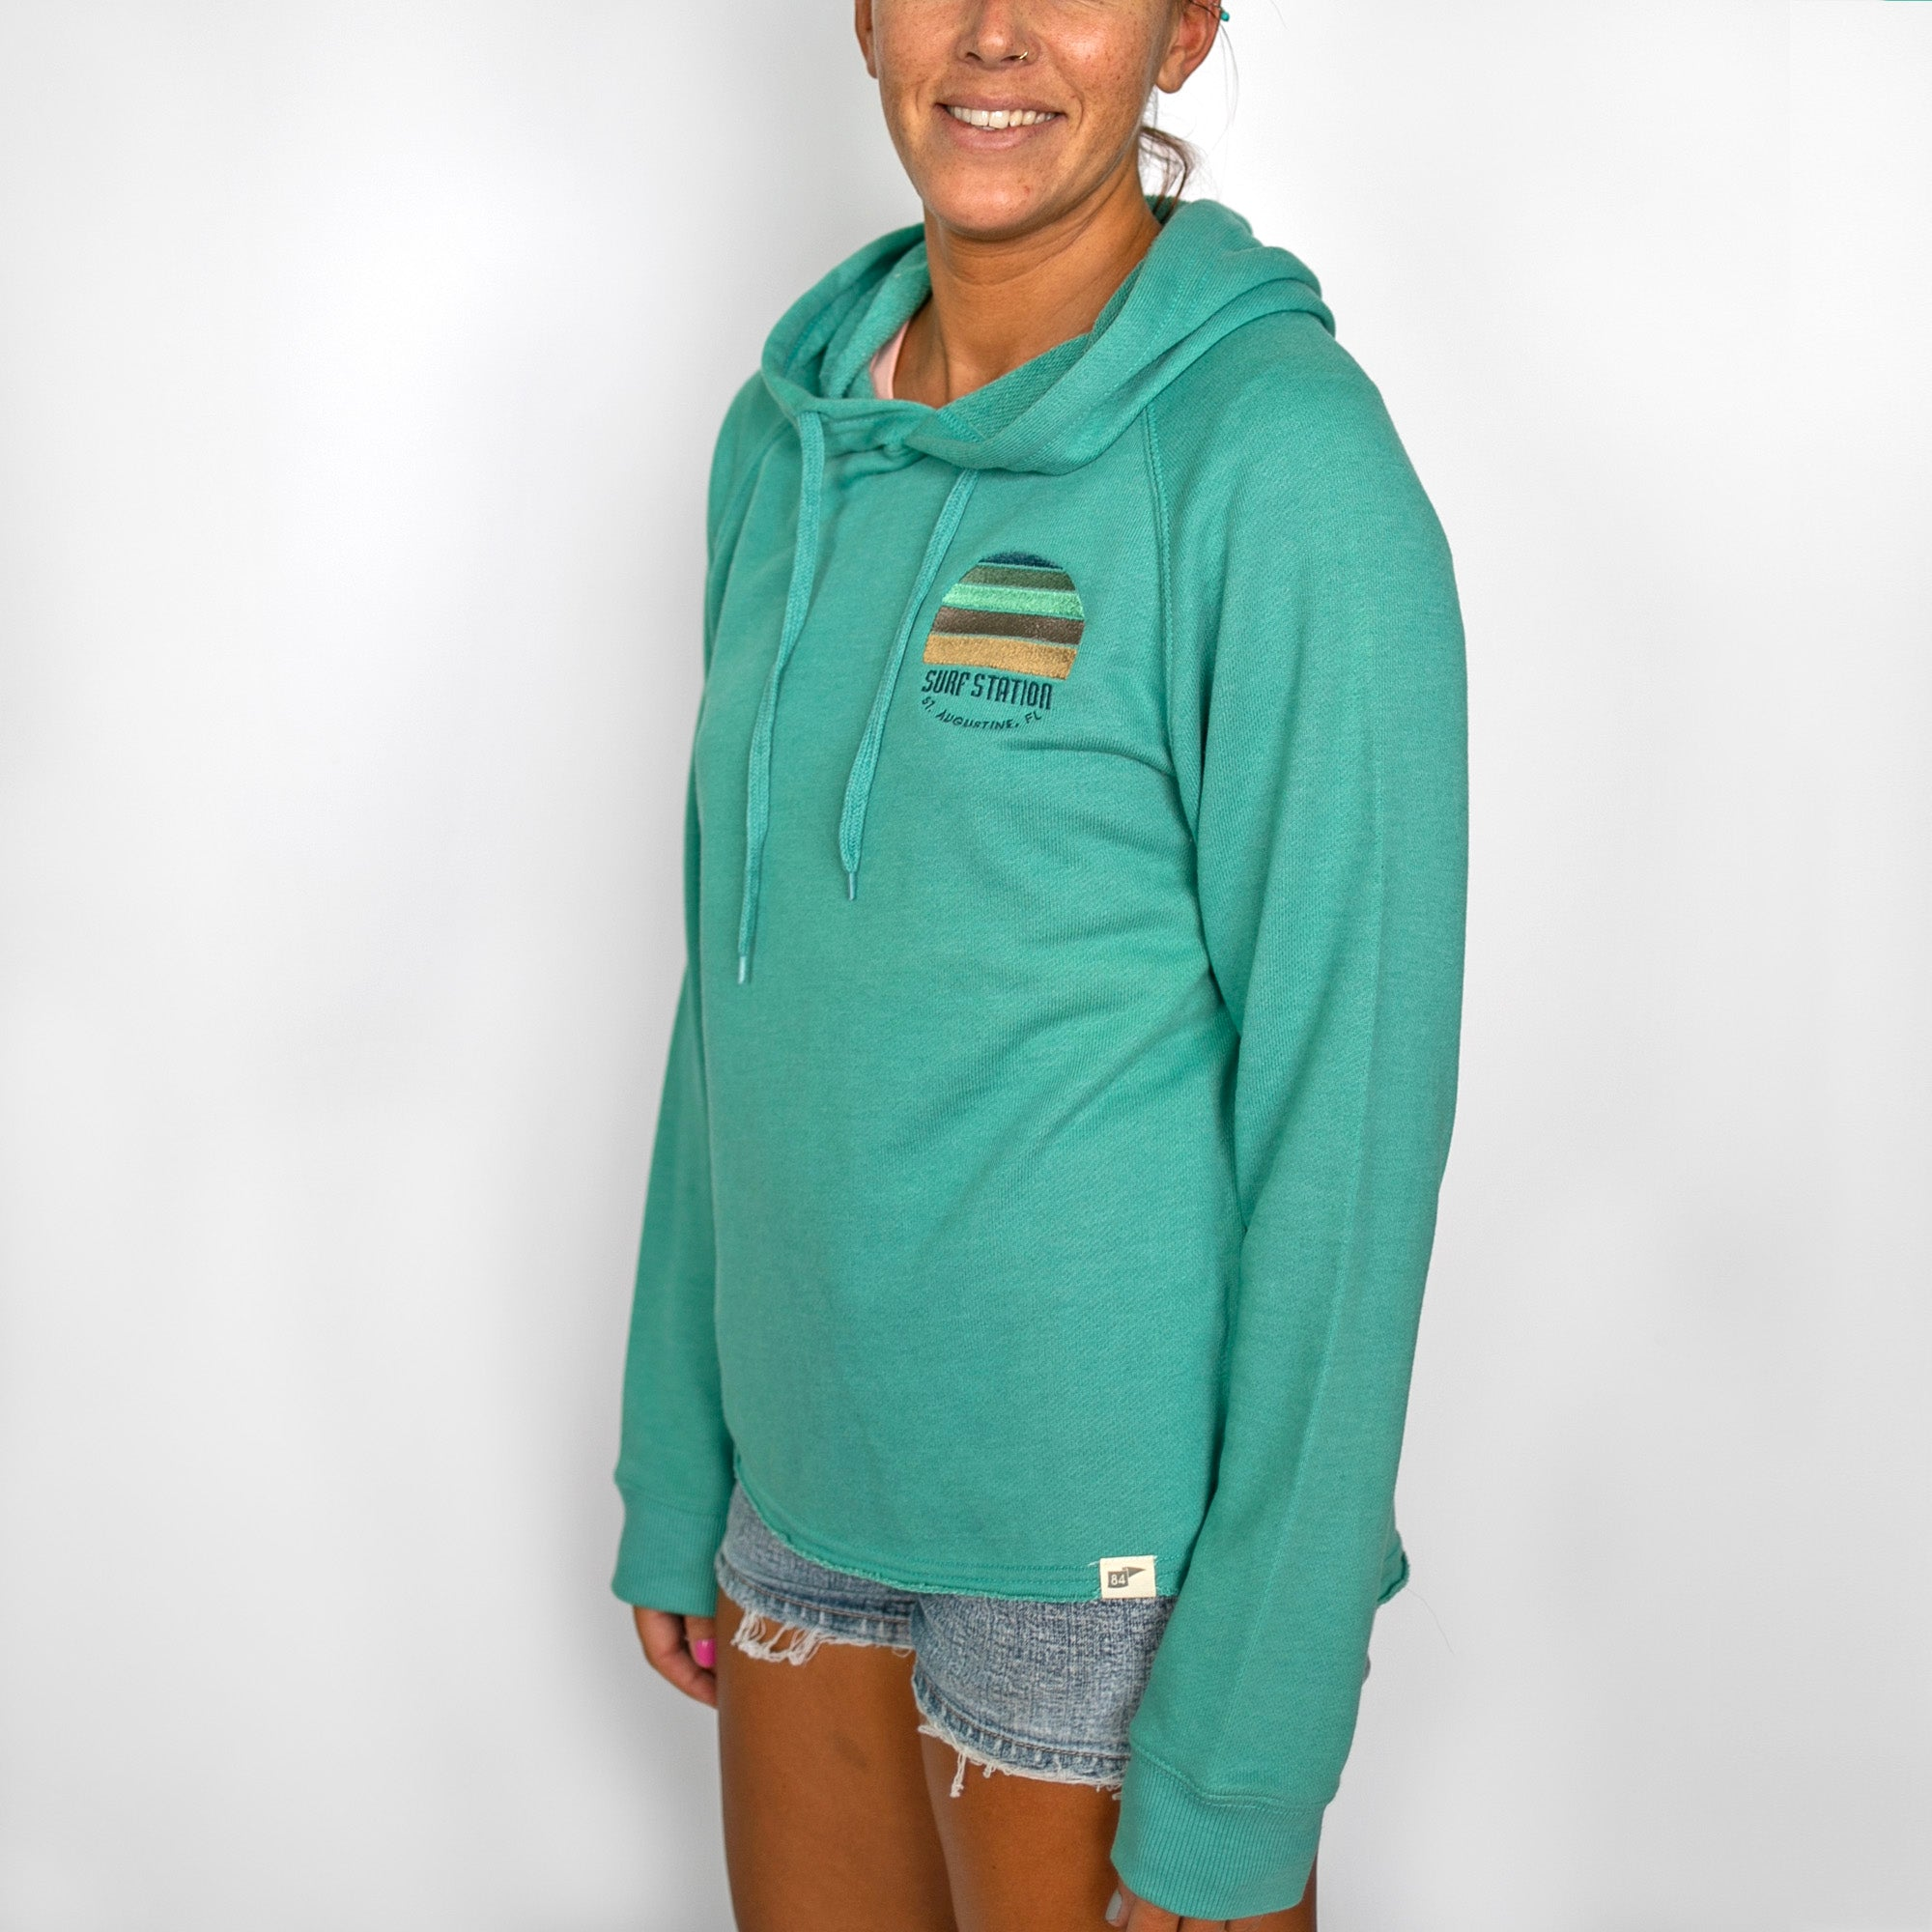 Surf Station Sunset Women's Hoodie